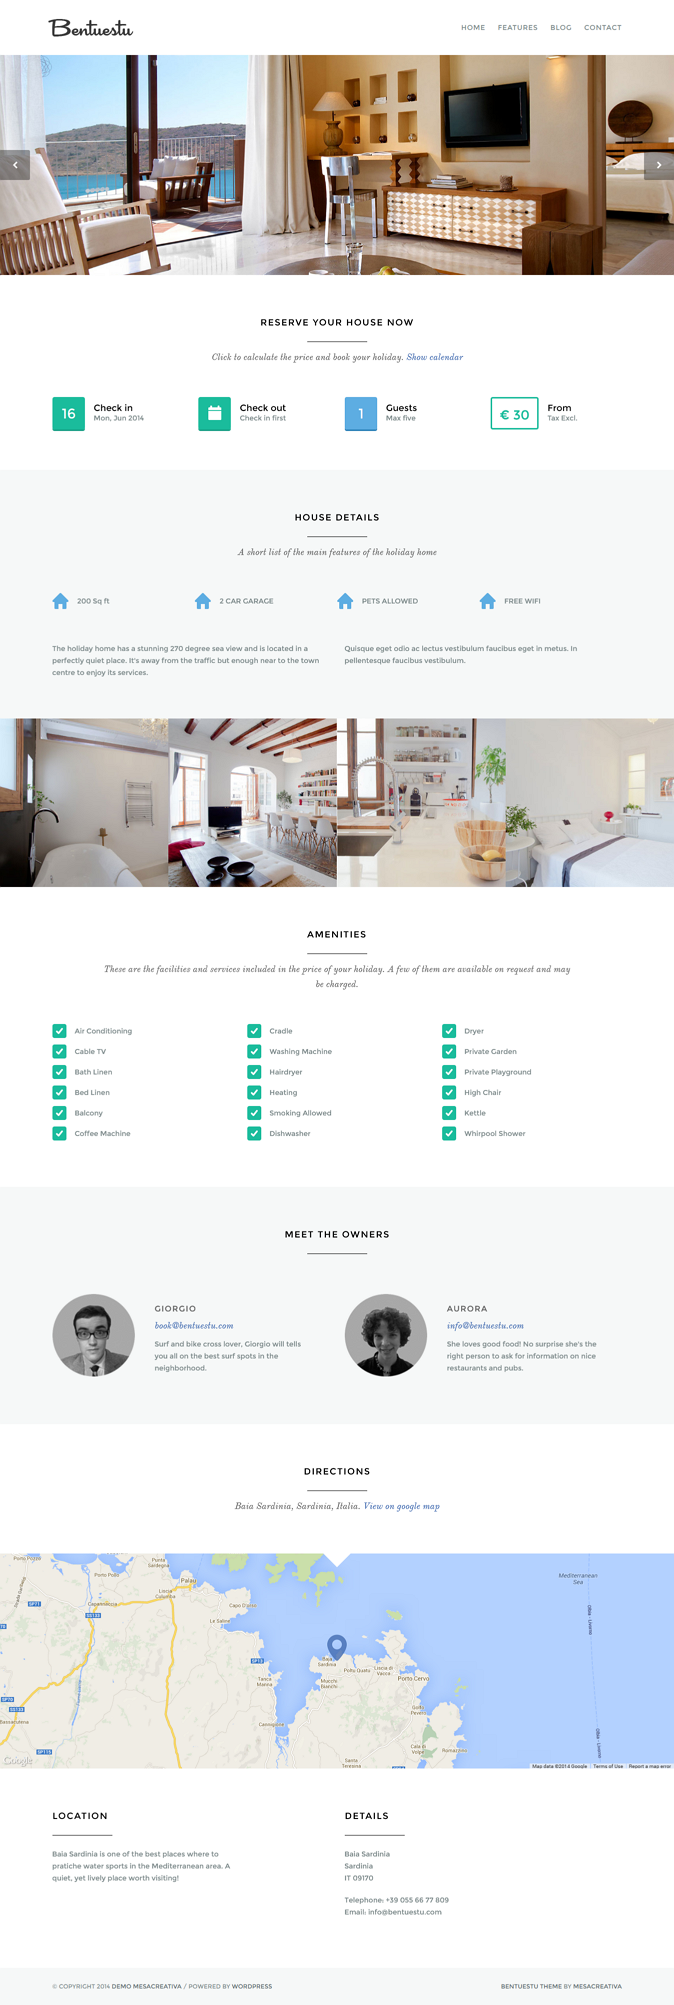 Bentuestu is a Responsive Real Estate WordPress Theme is the fastest and easiest solution to Ren ...